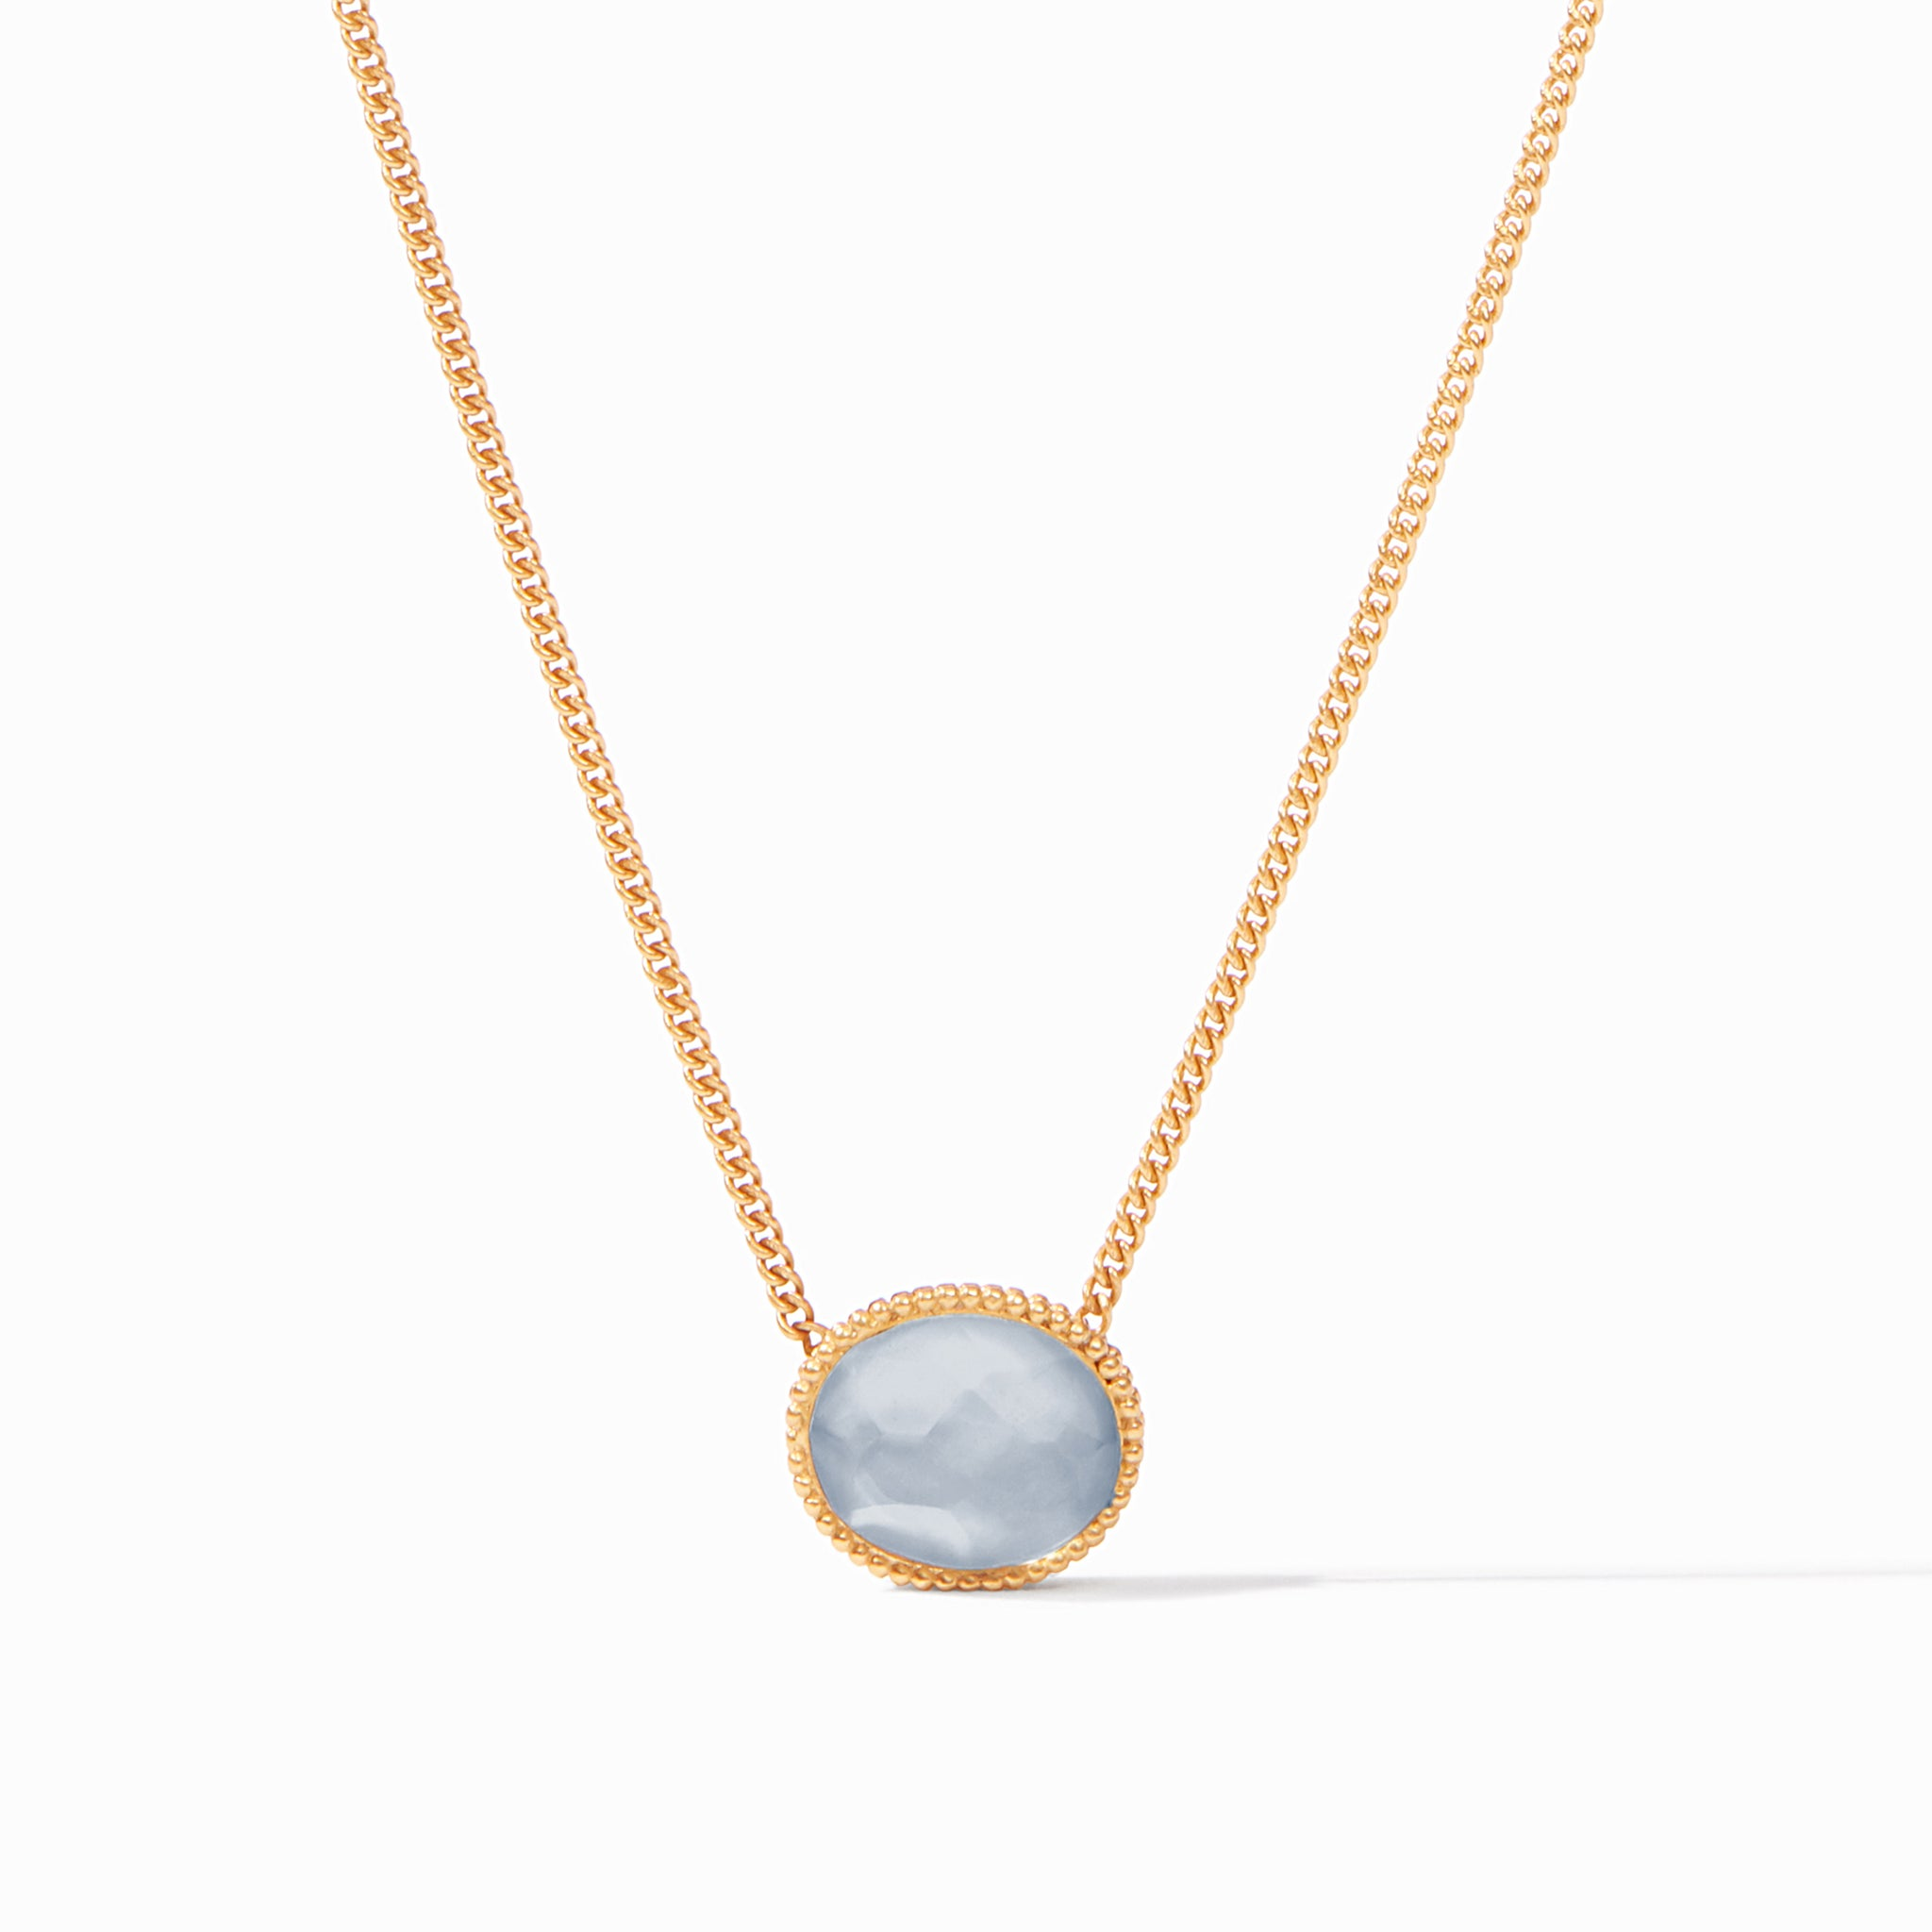 Iridescent Chalcedony Blue, Back in Stock, necklace favorites, gift guide 2020, the finer things, new in chalcedony blue